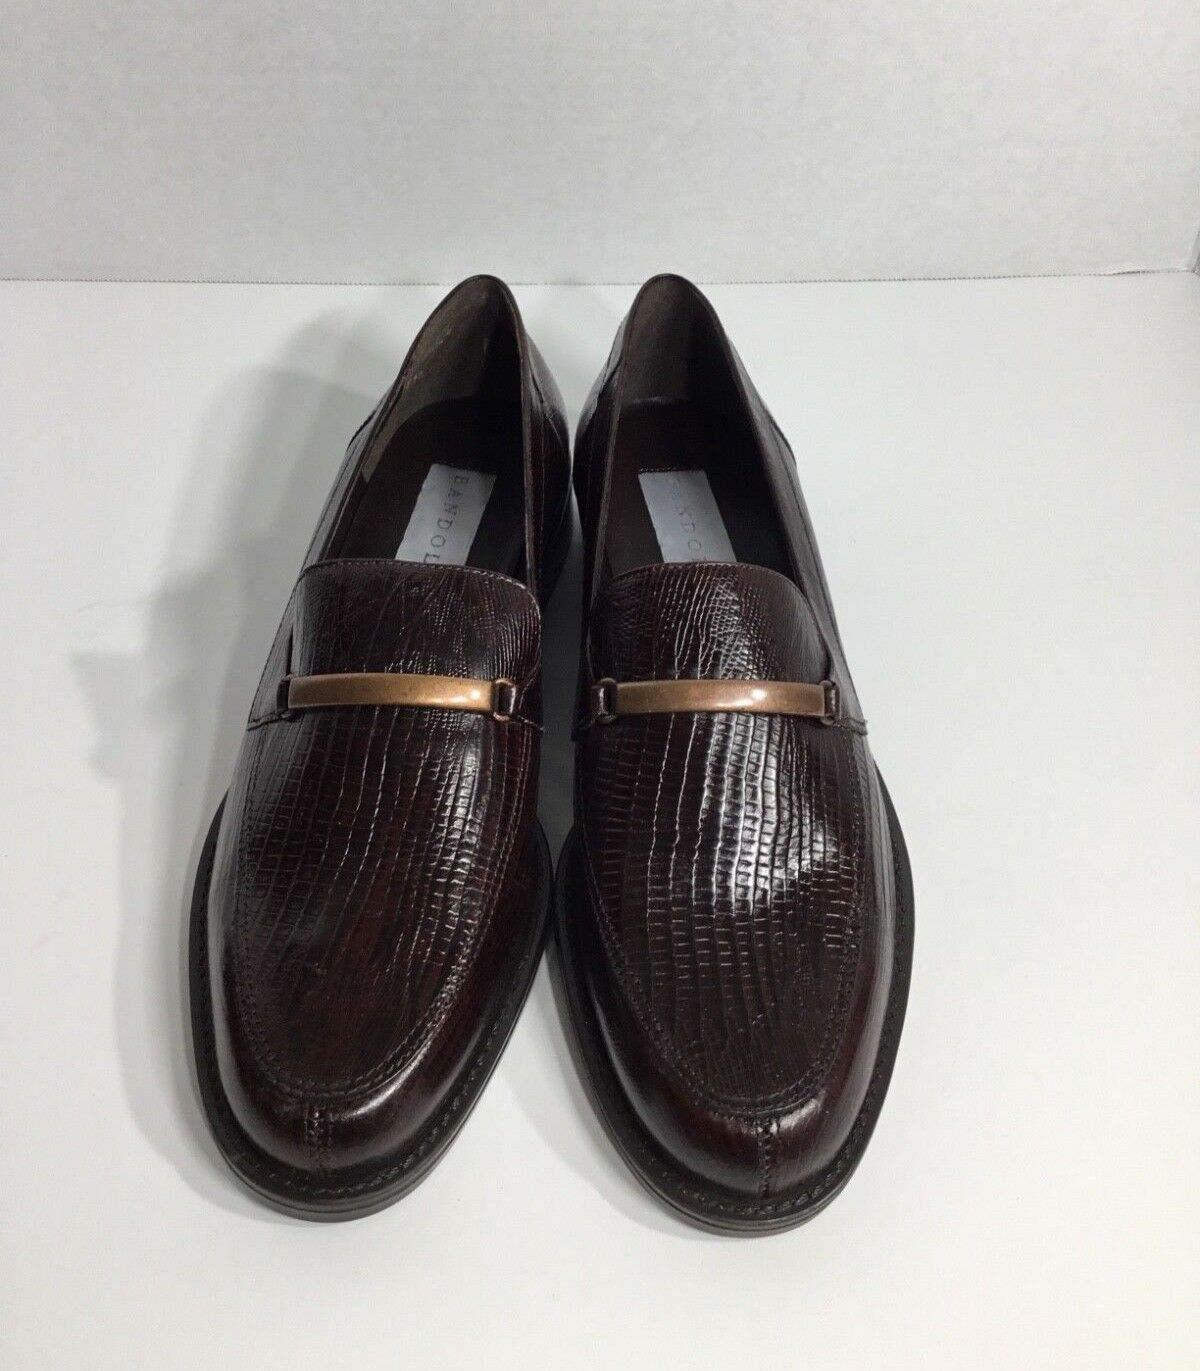 Women's Bandolina Brown Croc Leather 9 Flat Loafers Shoes Size 9 Leather 57dc77